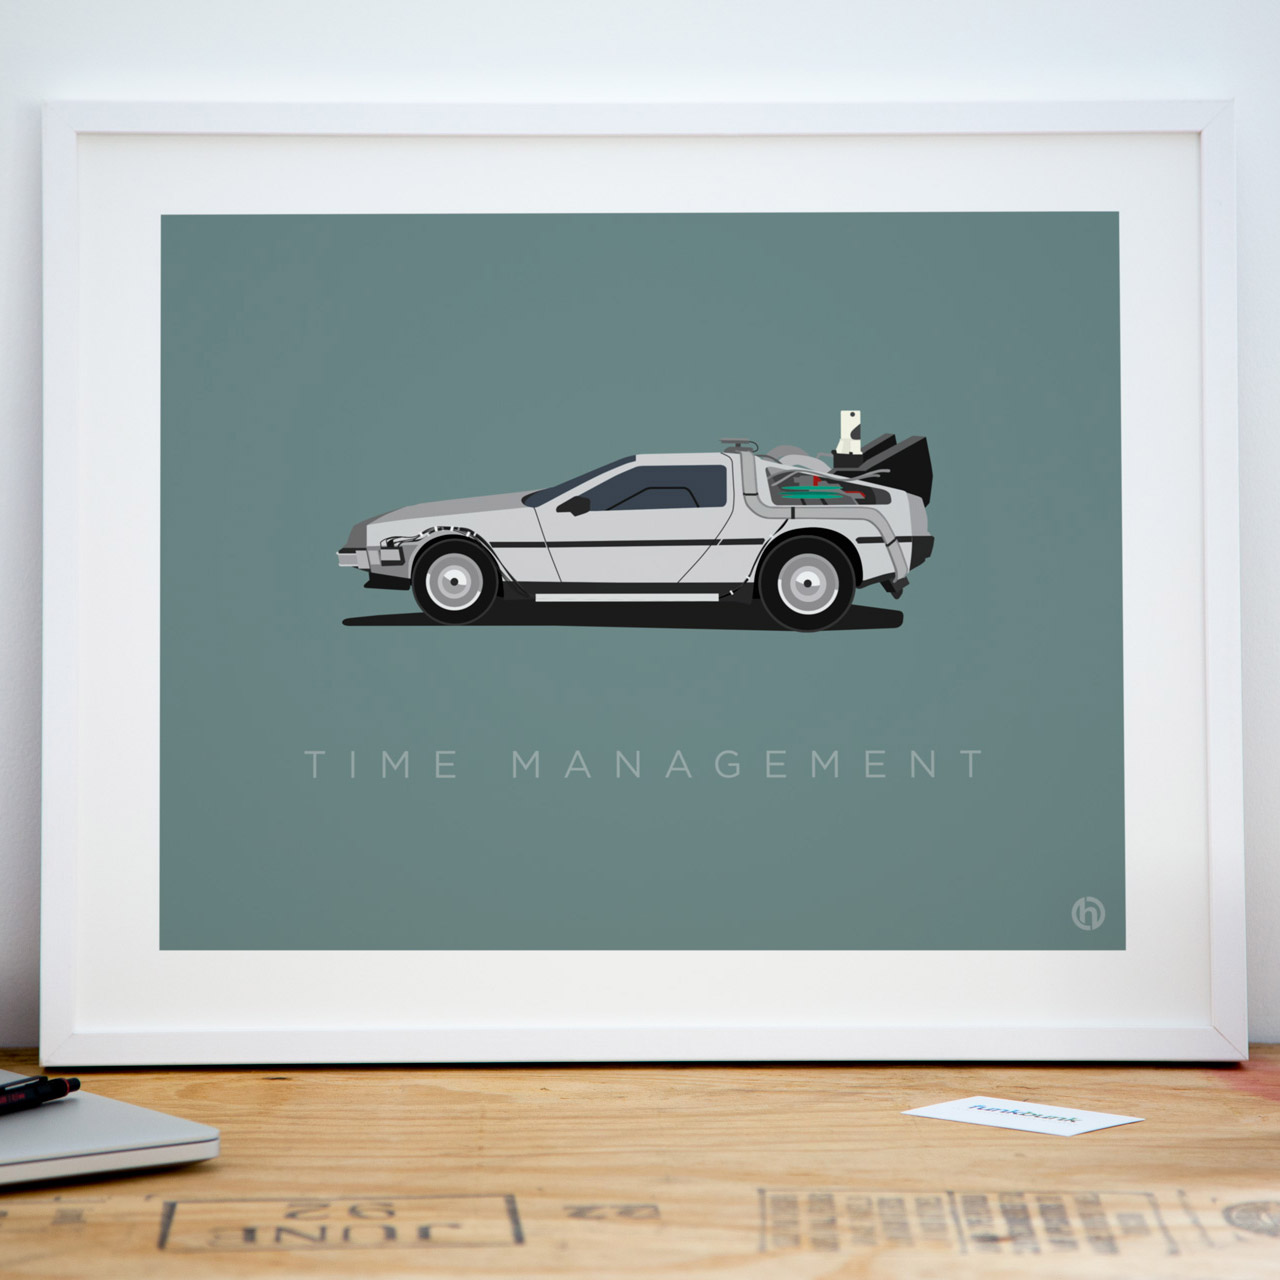 Time Management: Time Management Office Art Print